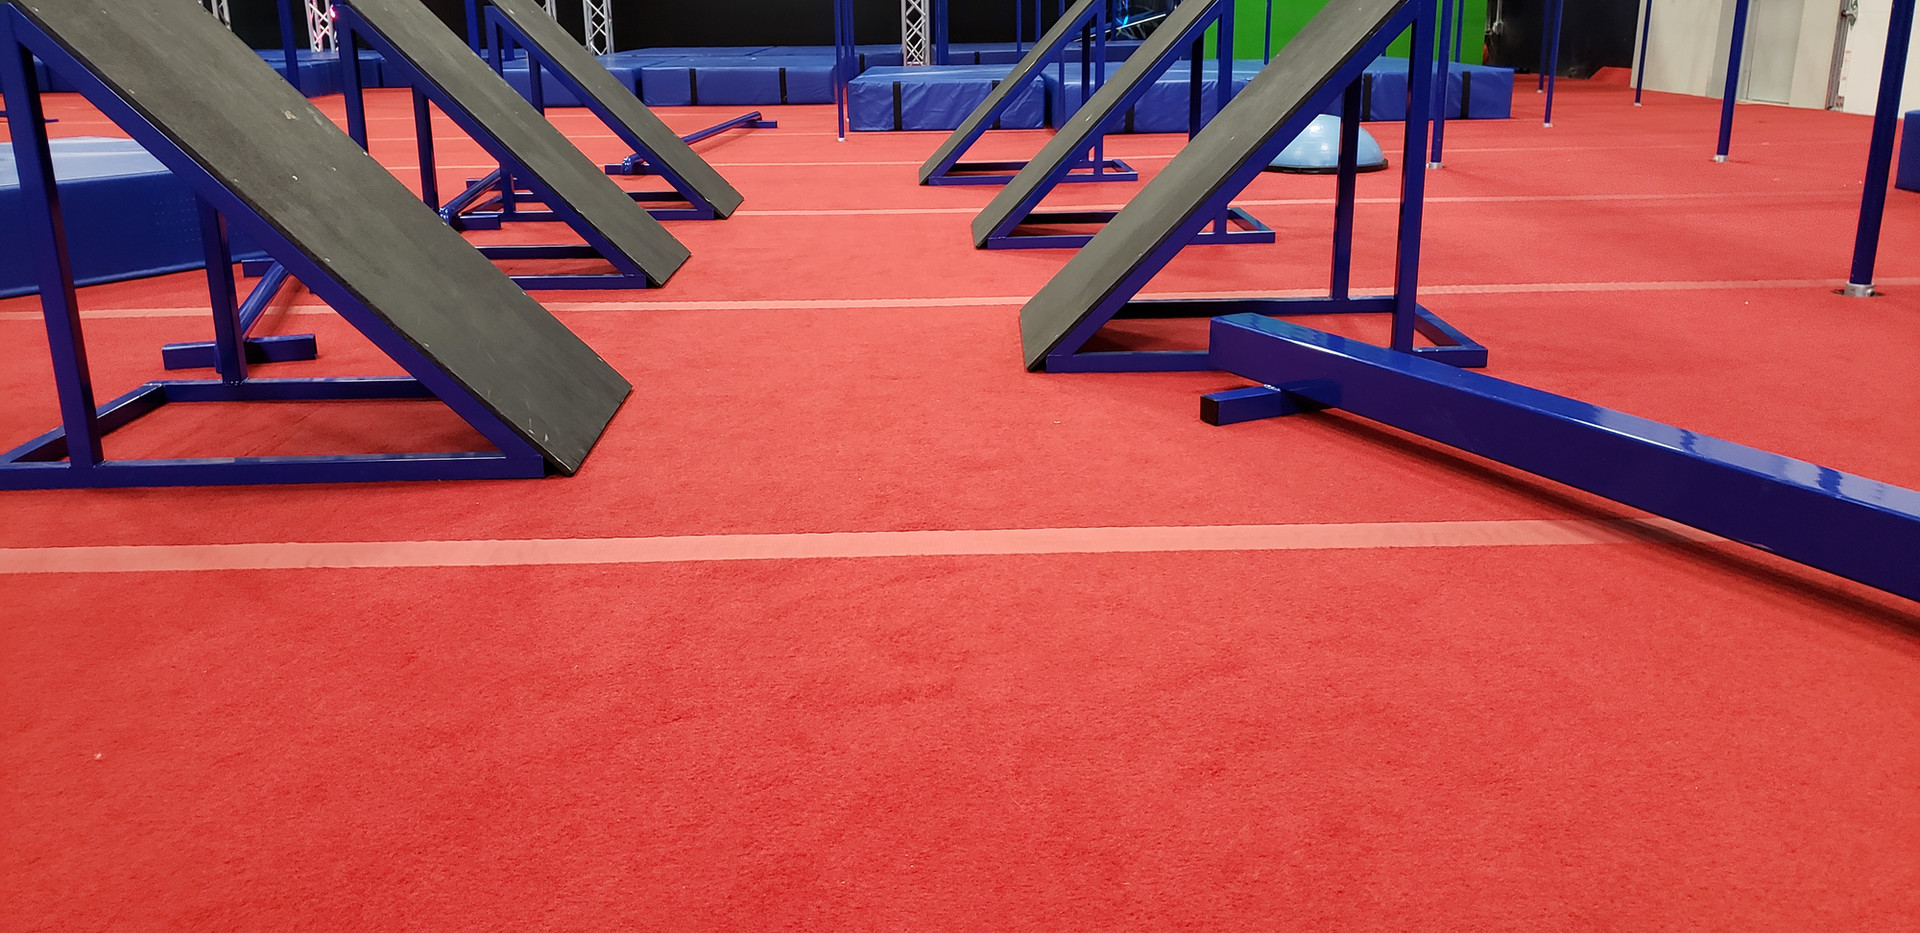 Obstacle Course Obstacles